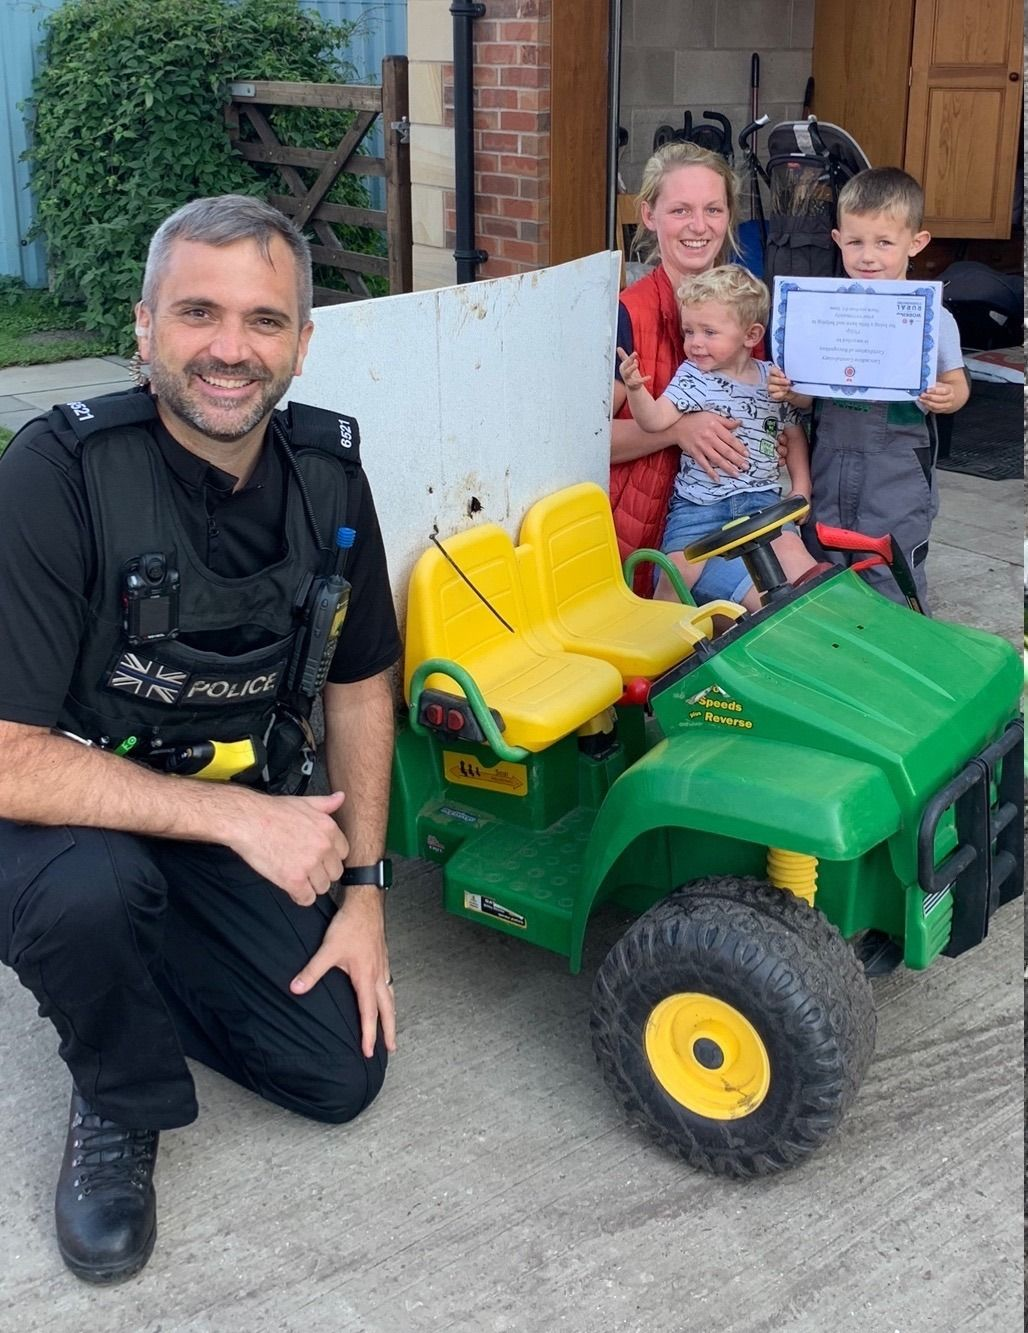 Phillip, aged 4 from Banks, near Southport, has used his battery operated gator and his litter picker to clean up his village